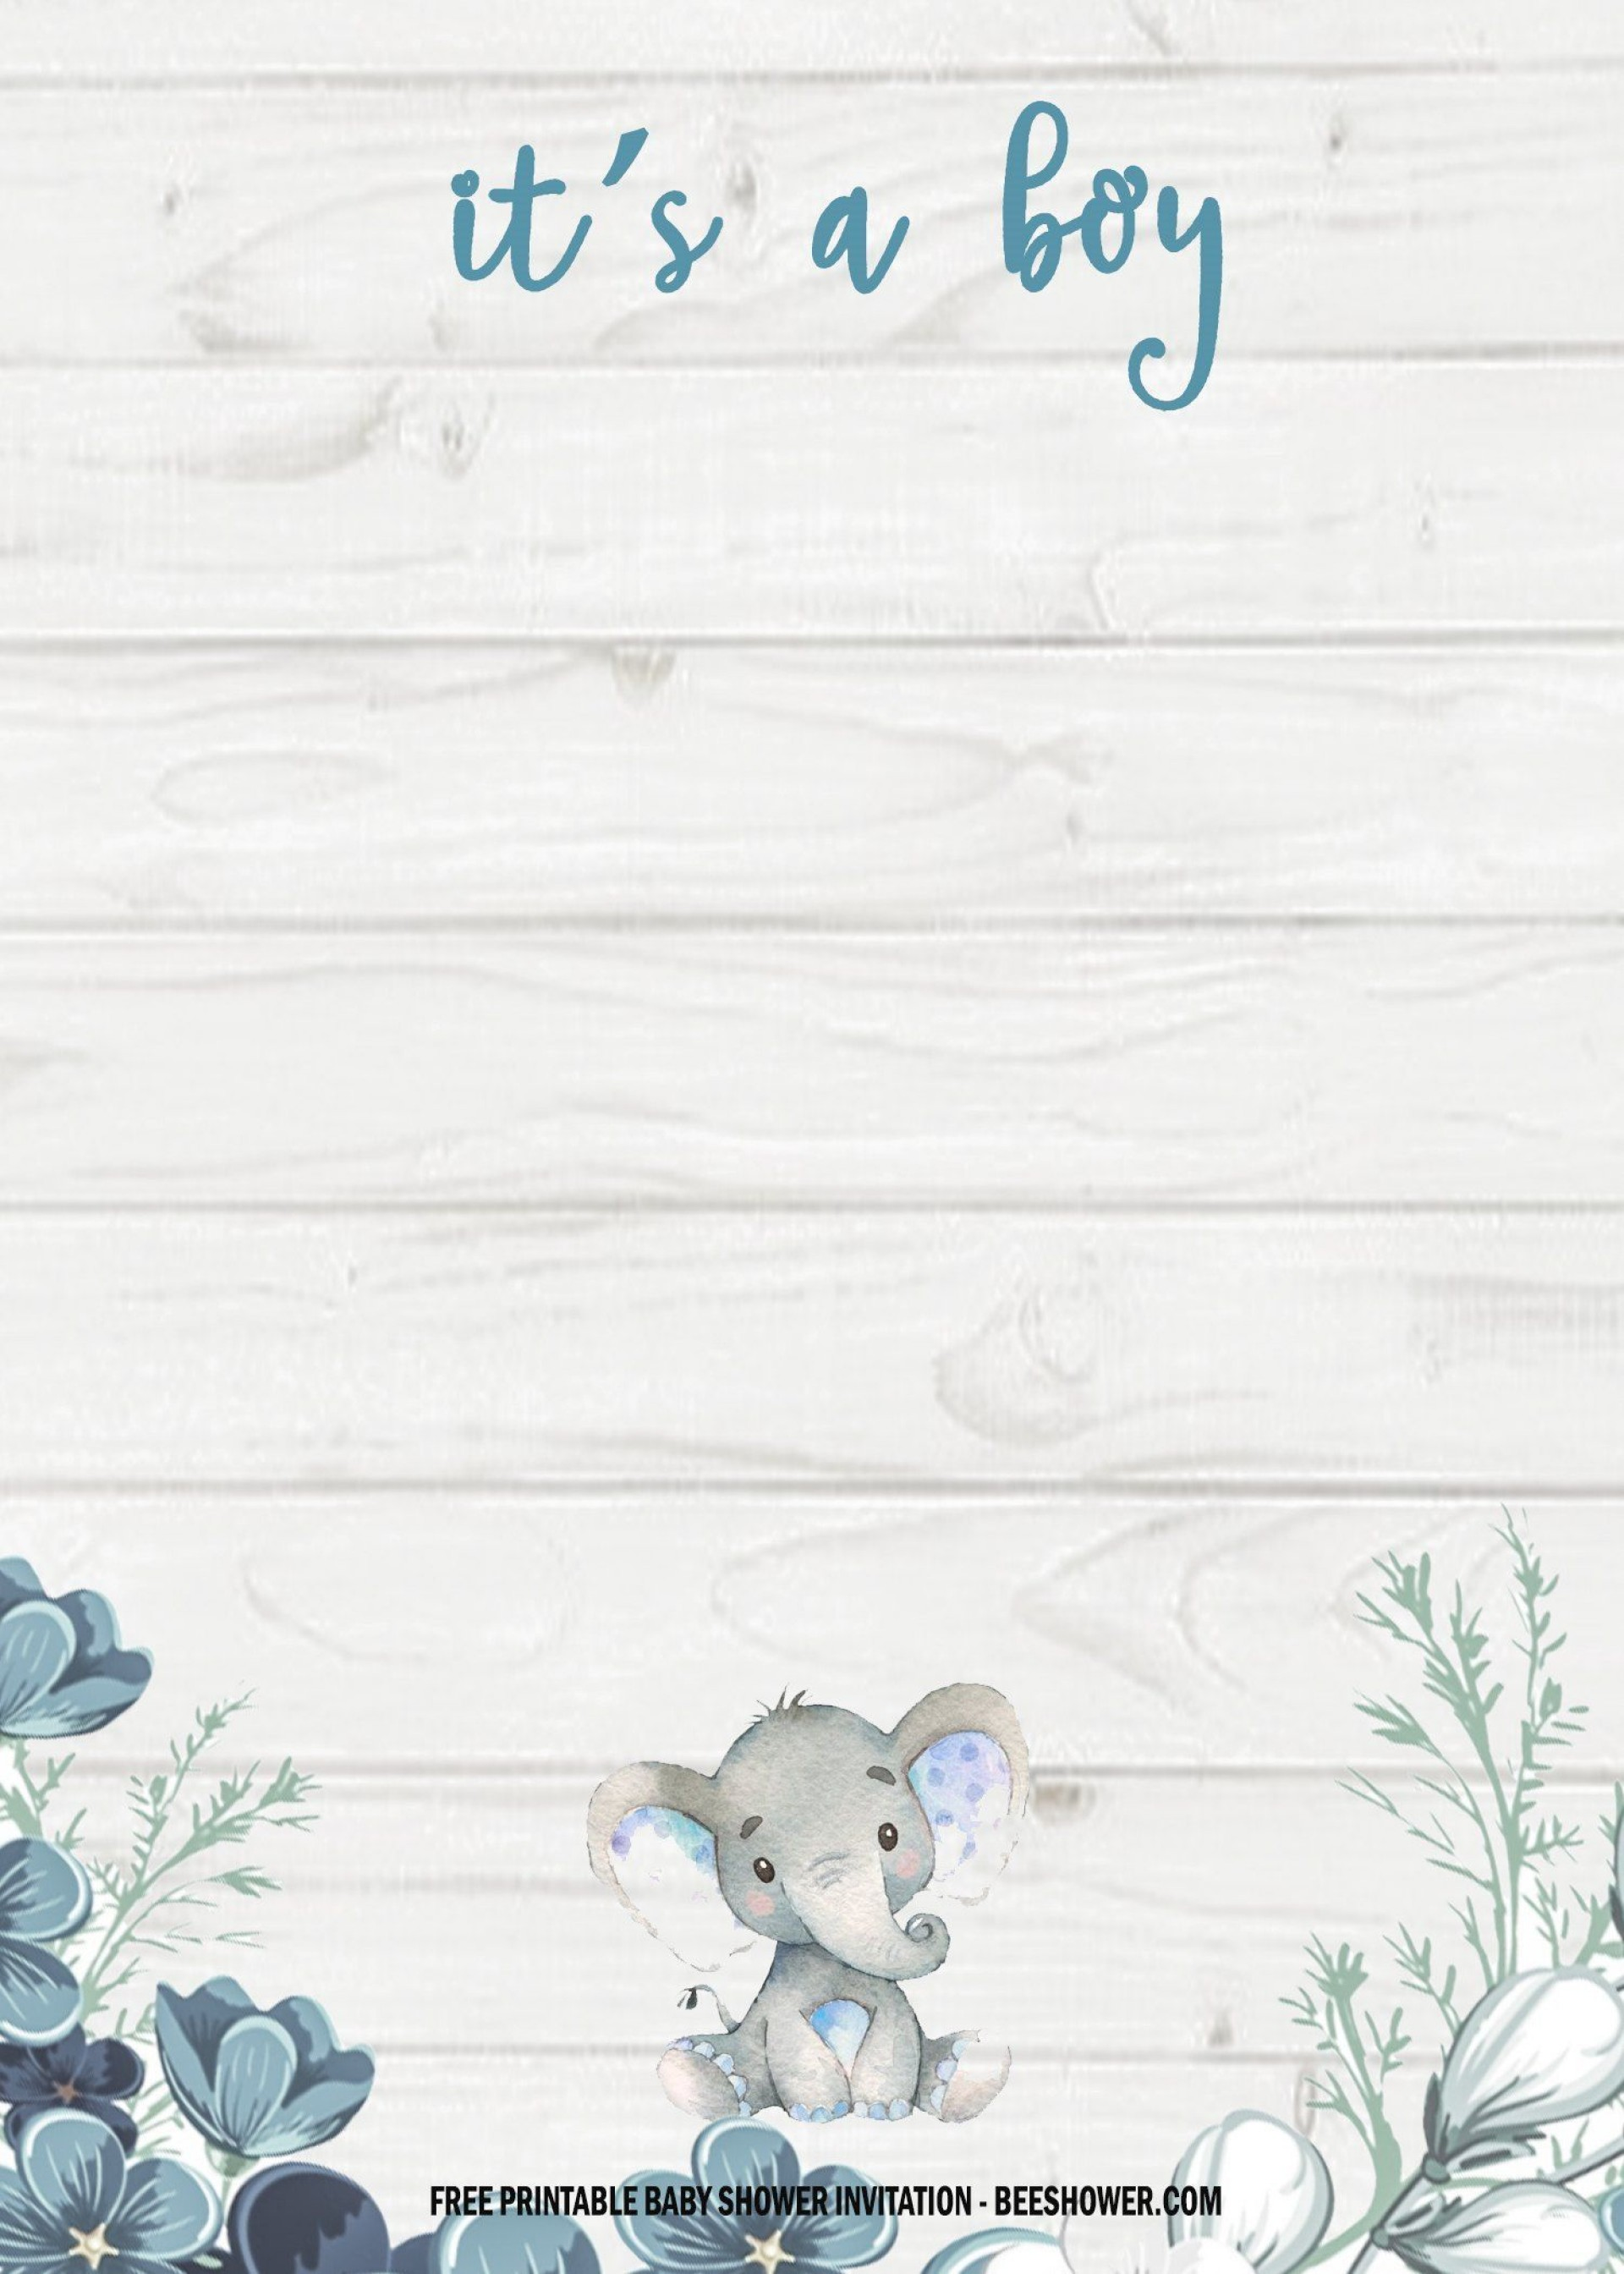 Baby Shower Template Free Printable